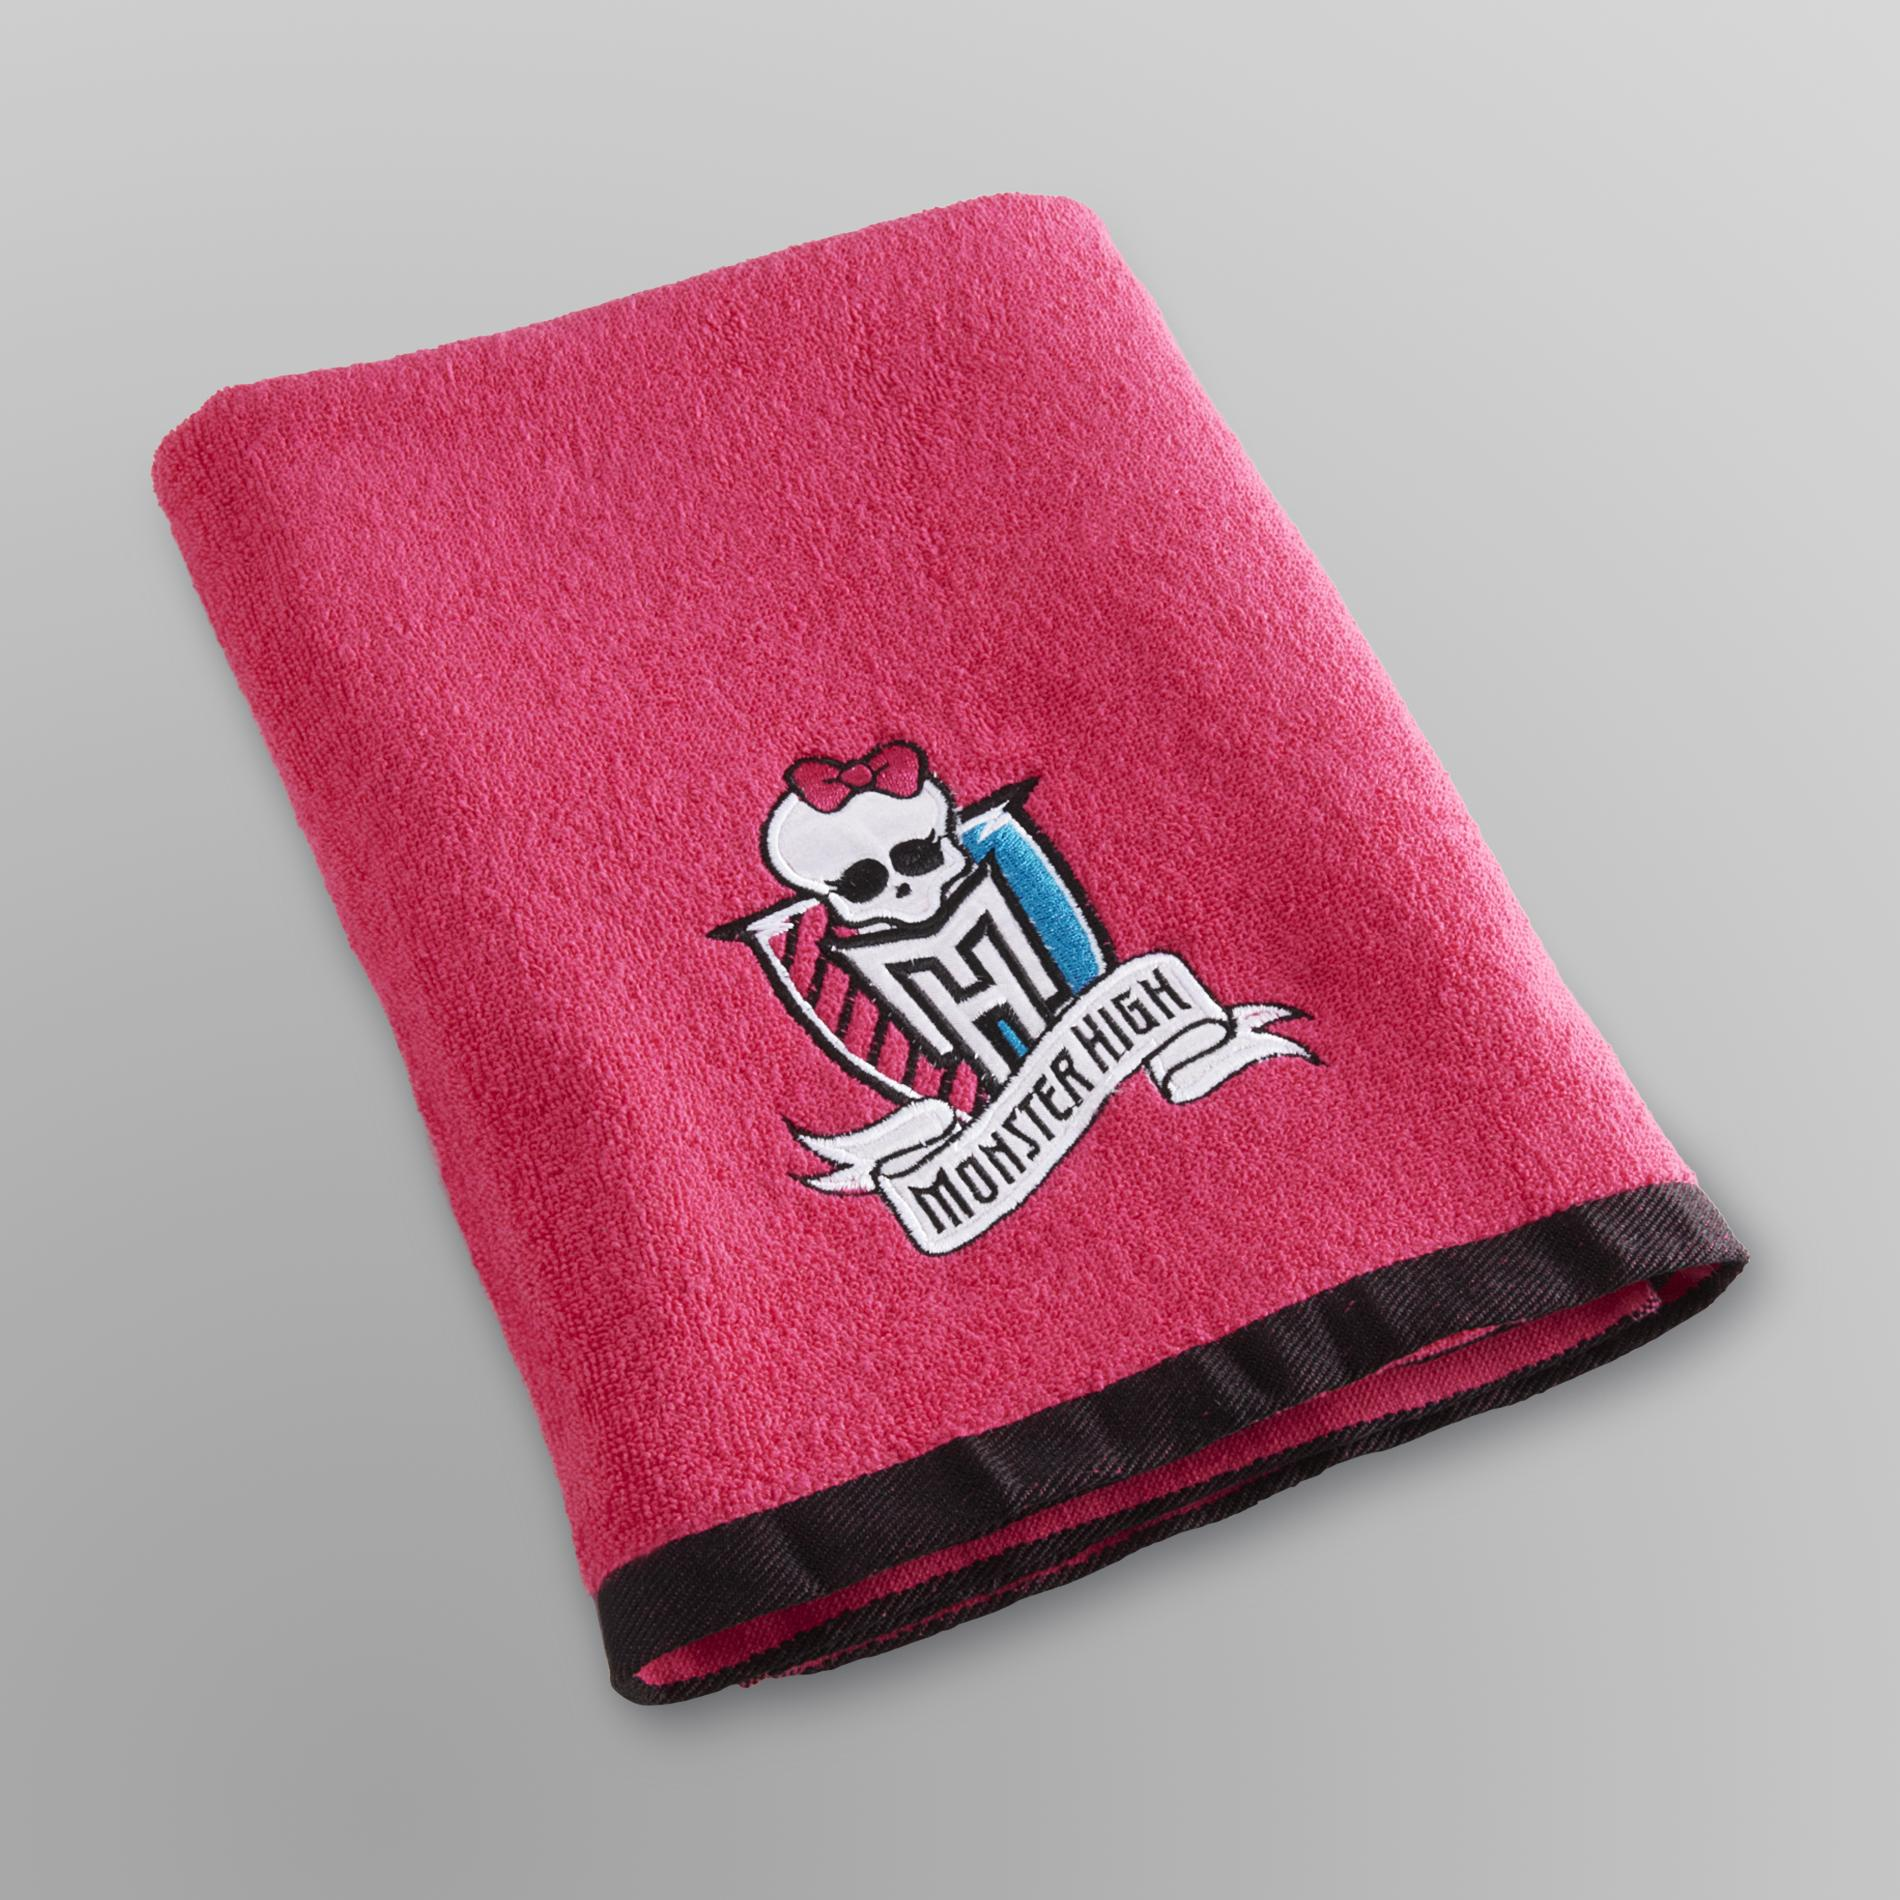 Mattel  Monster High Bath Towel